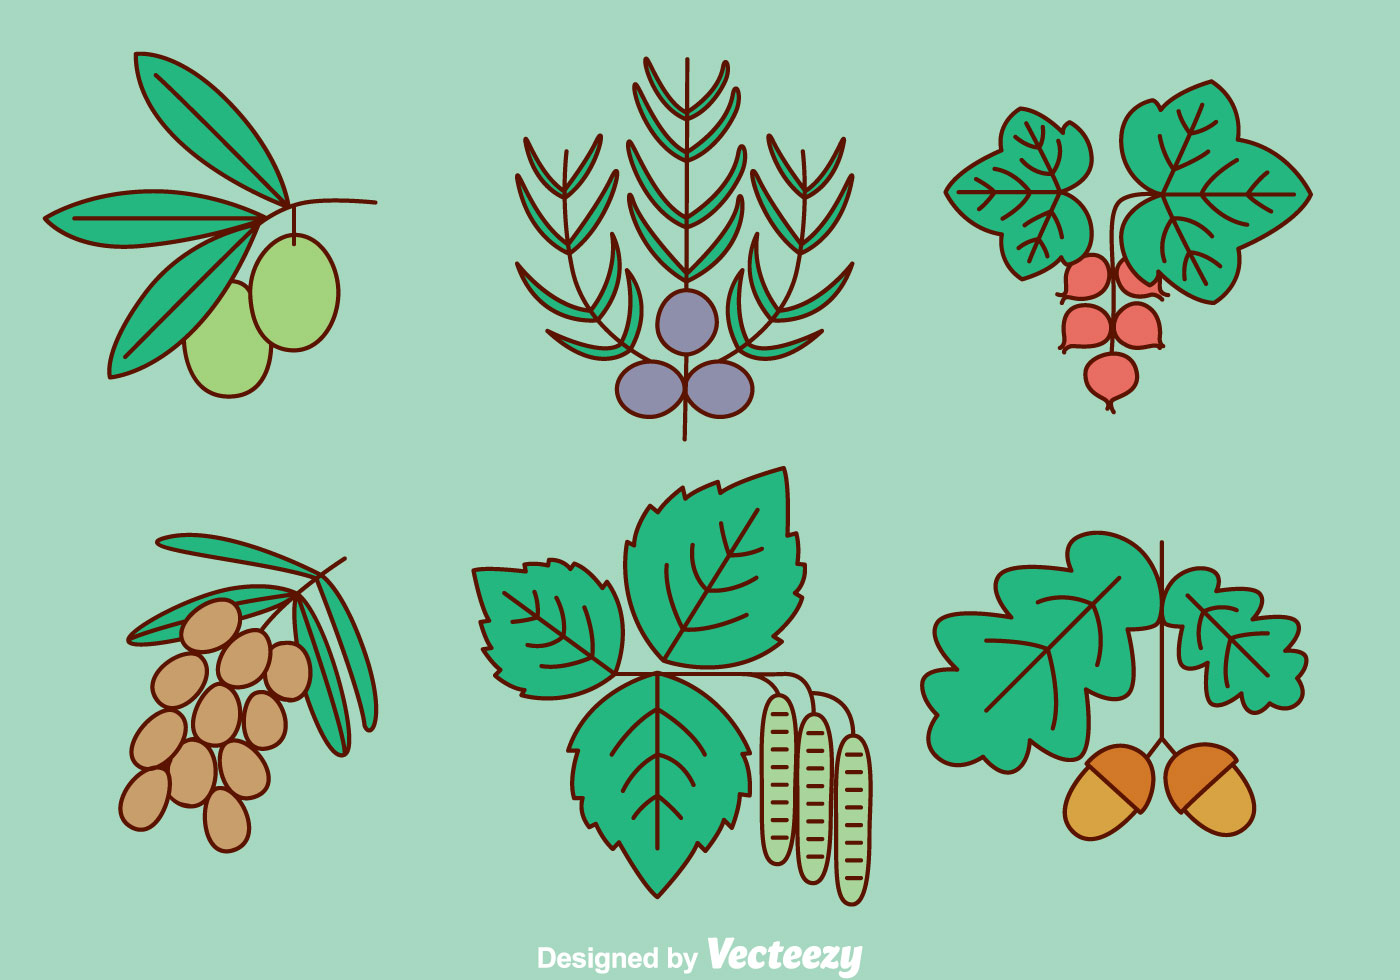 Herb And Spice Plant Vector - Download Free Vector Art, Stock ...